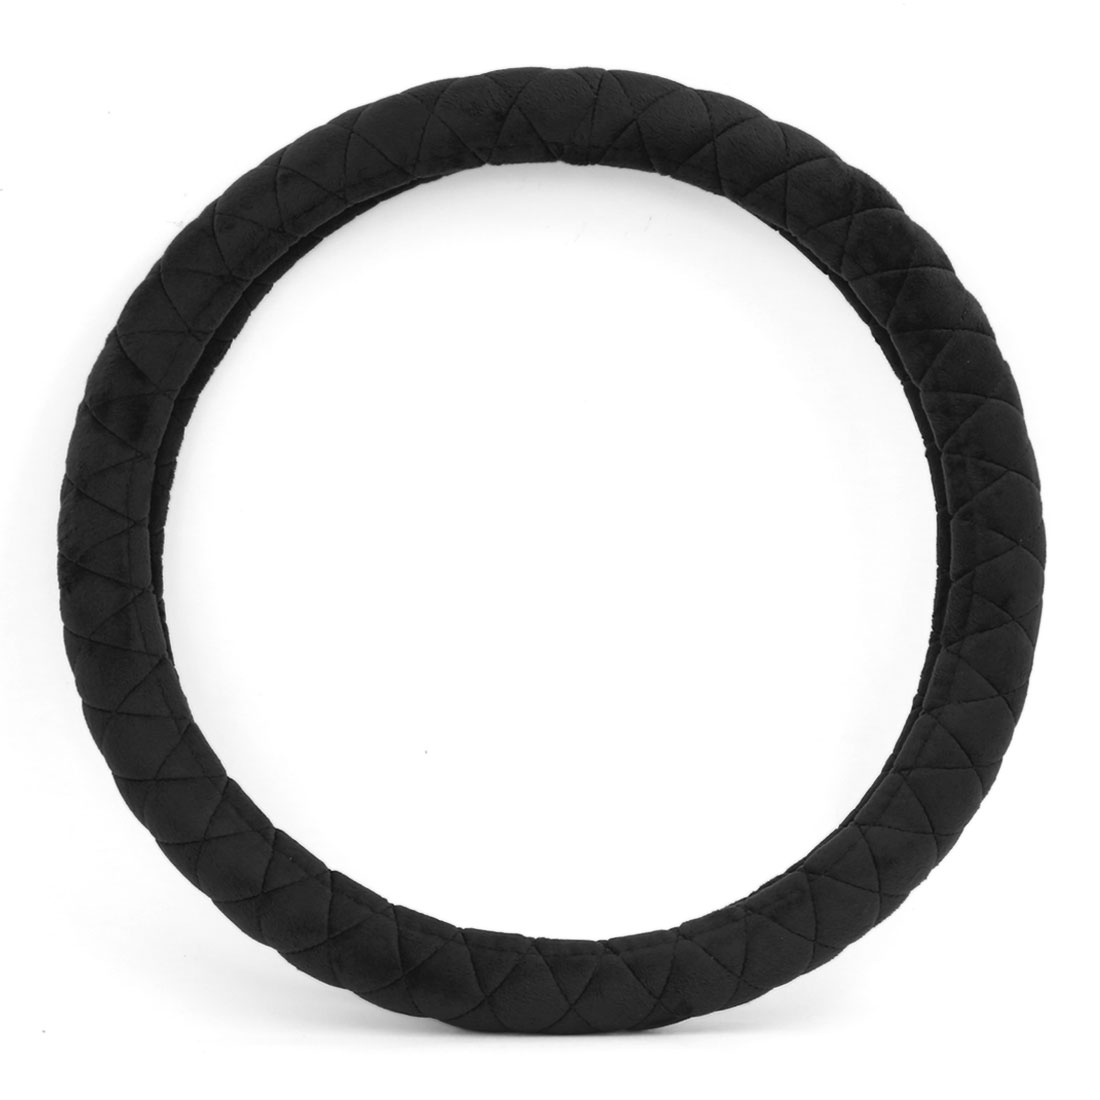 38cm Outer 31cm Inner Dia Comfortable Short Plush Car Steering Wheel Cover Black